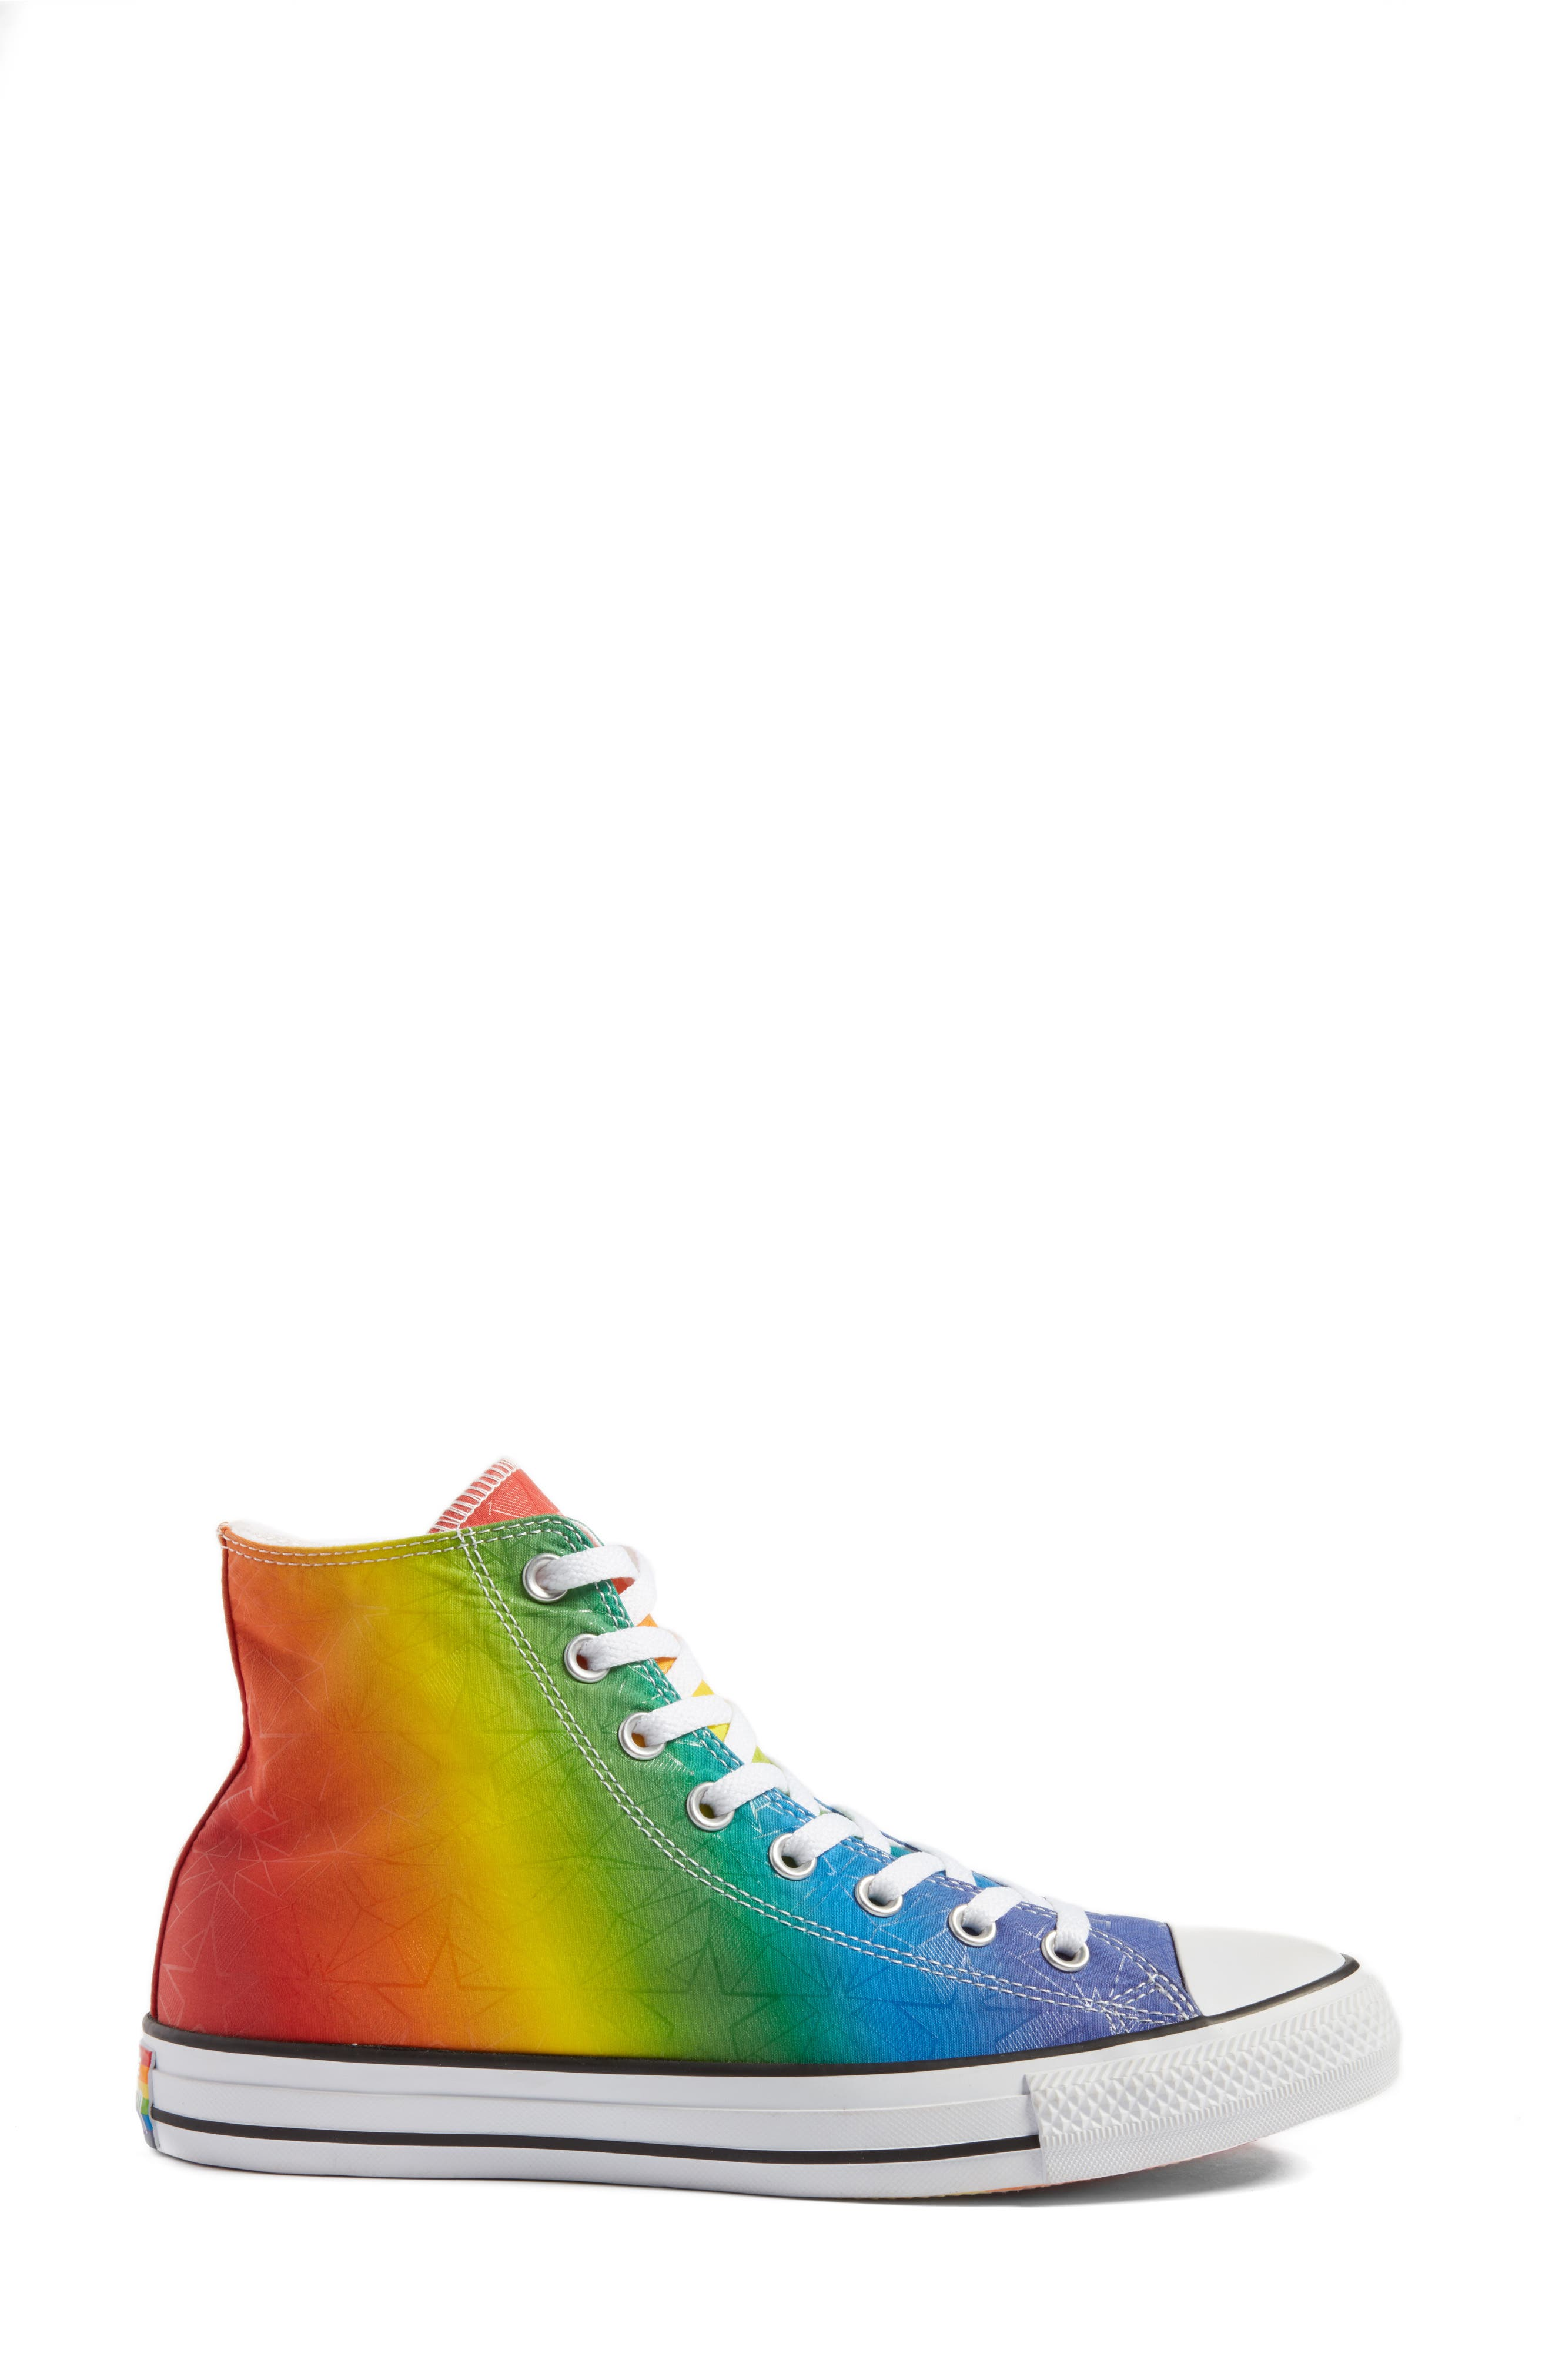 Chuck Taylor<sup>®</sup> All Star<sup>®</sup> Pride High Top Sneaker,                             Alternate thumbnail 3, color,                             500